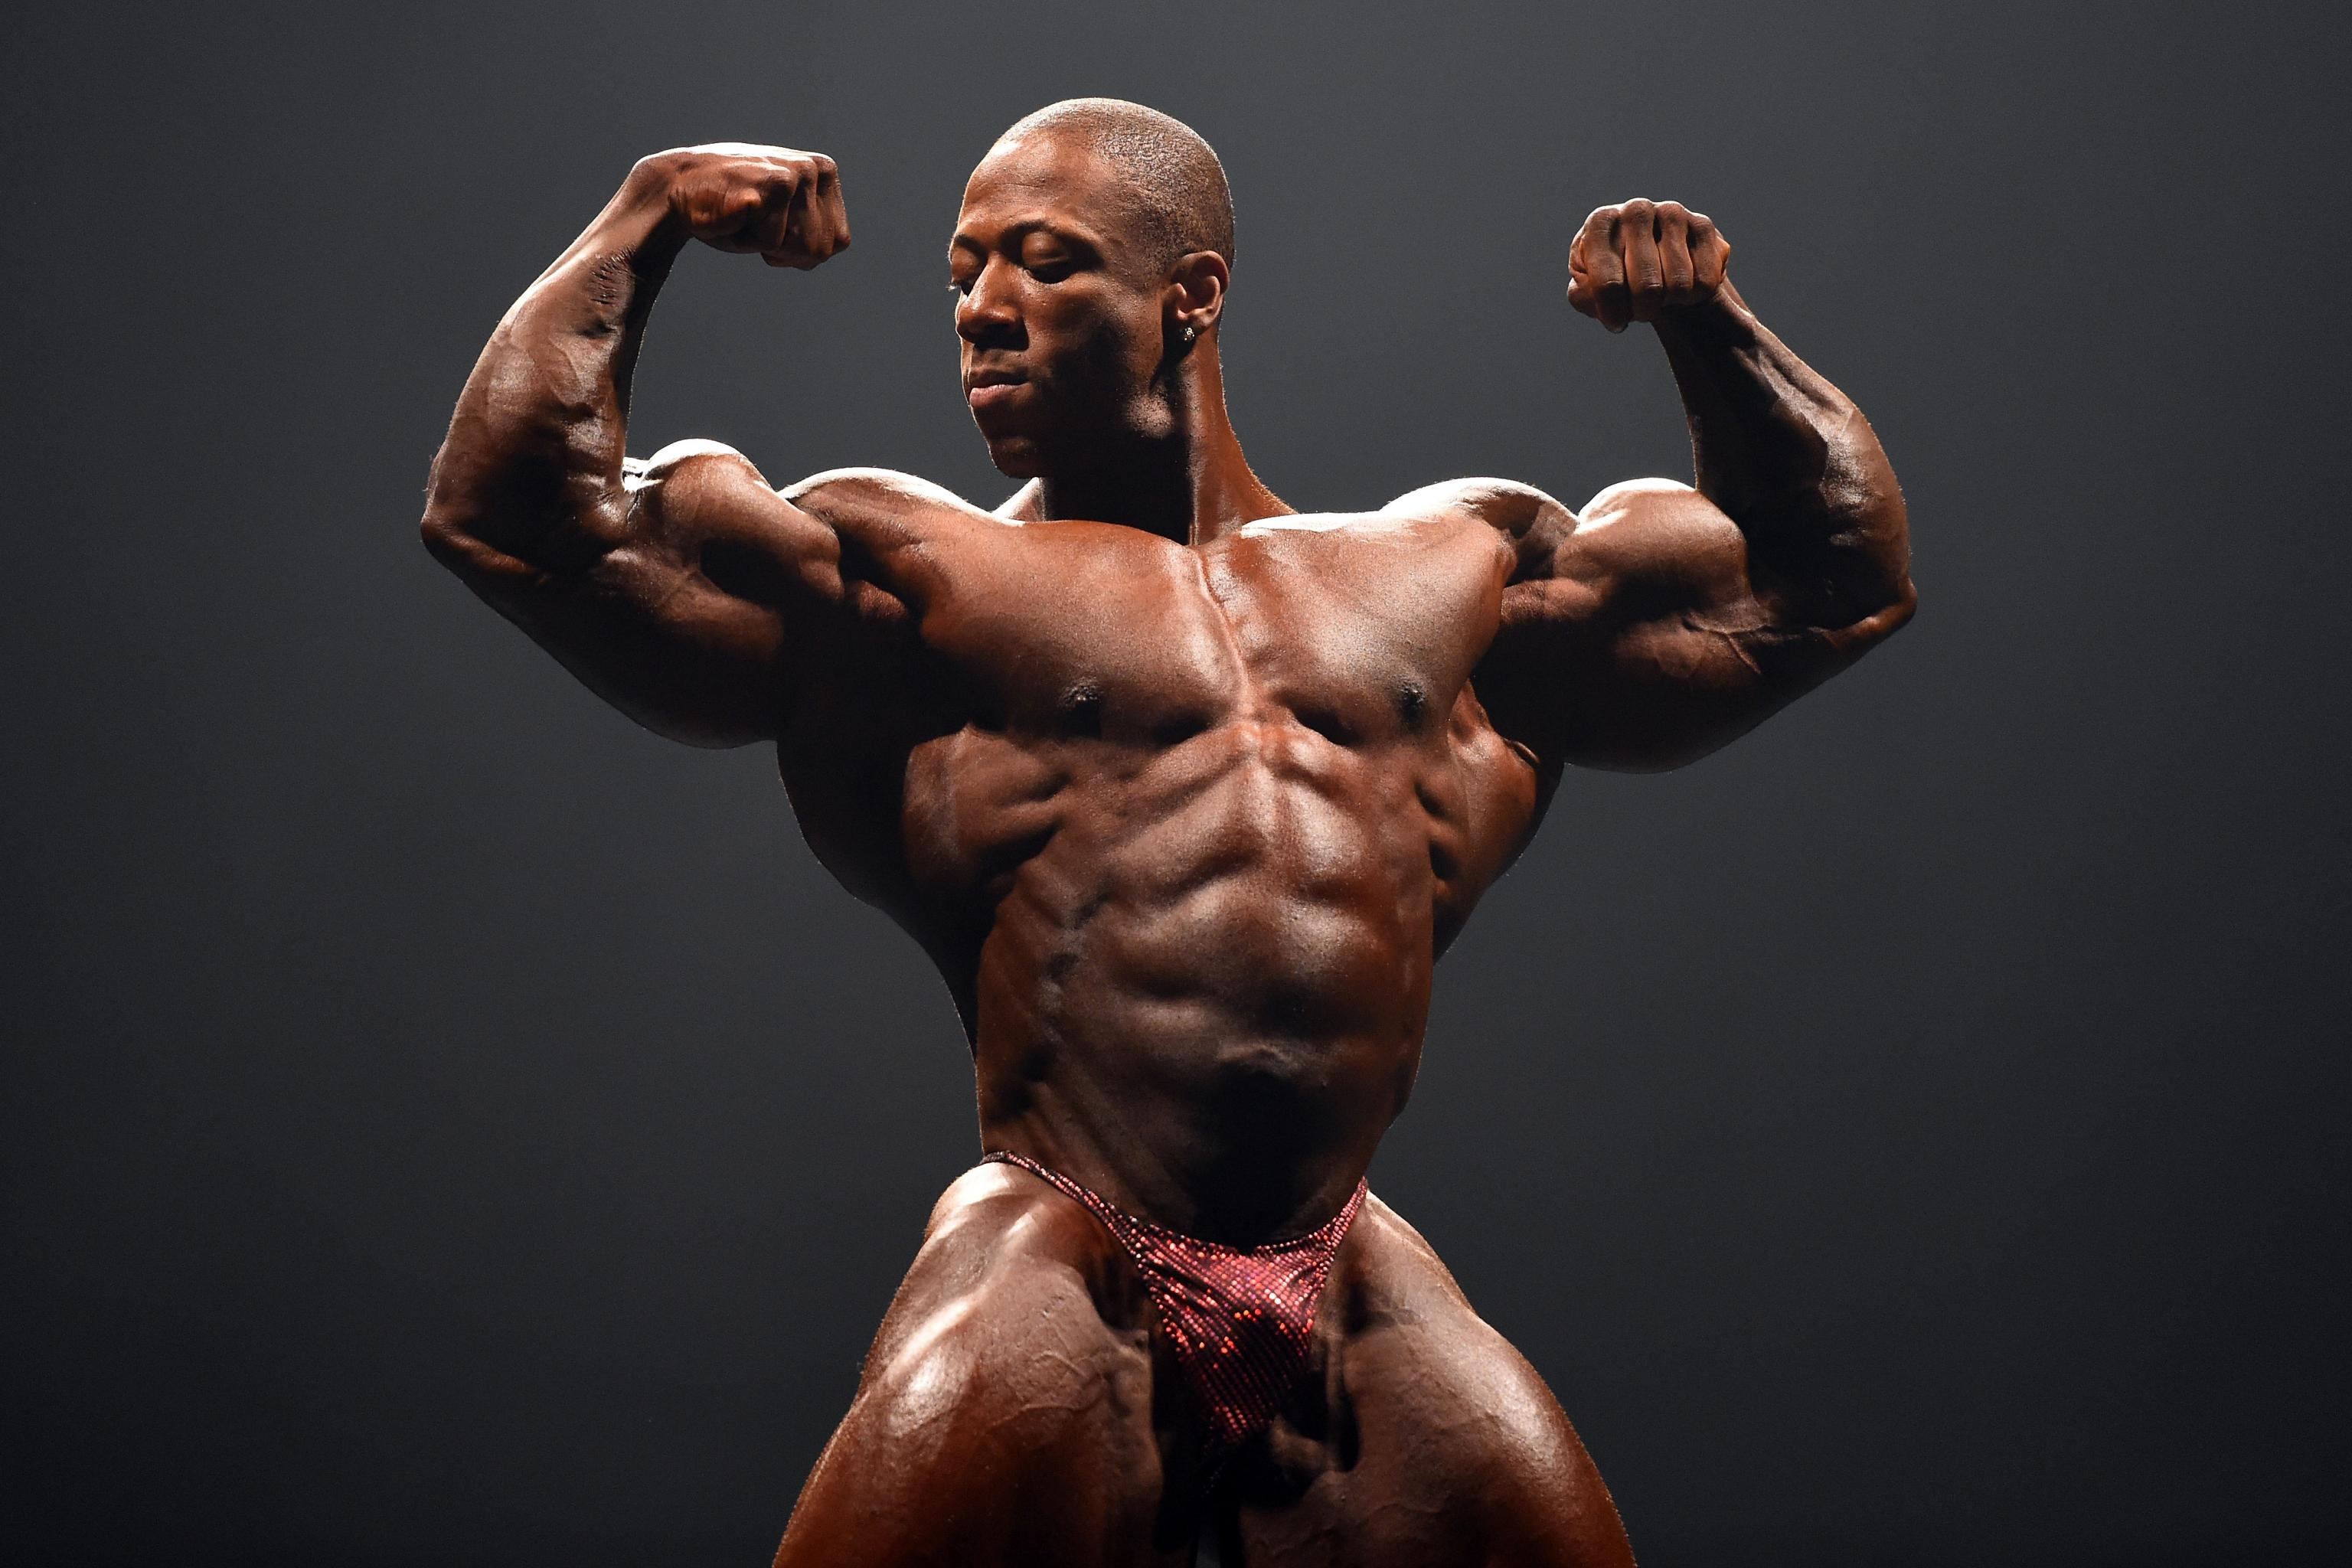 Mr Olympia 2019 Schedule Mr. Olympia 2018: Final Results, Top Videos and Predictions for